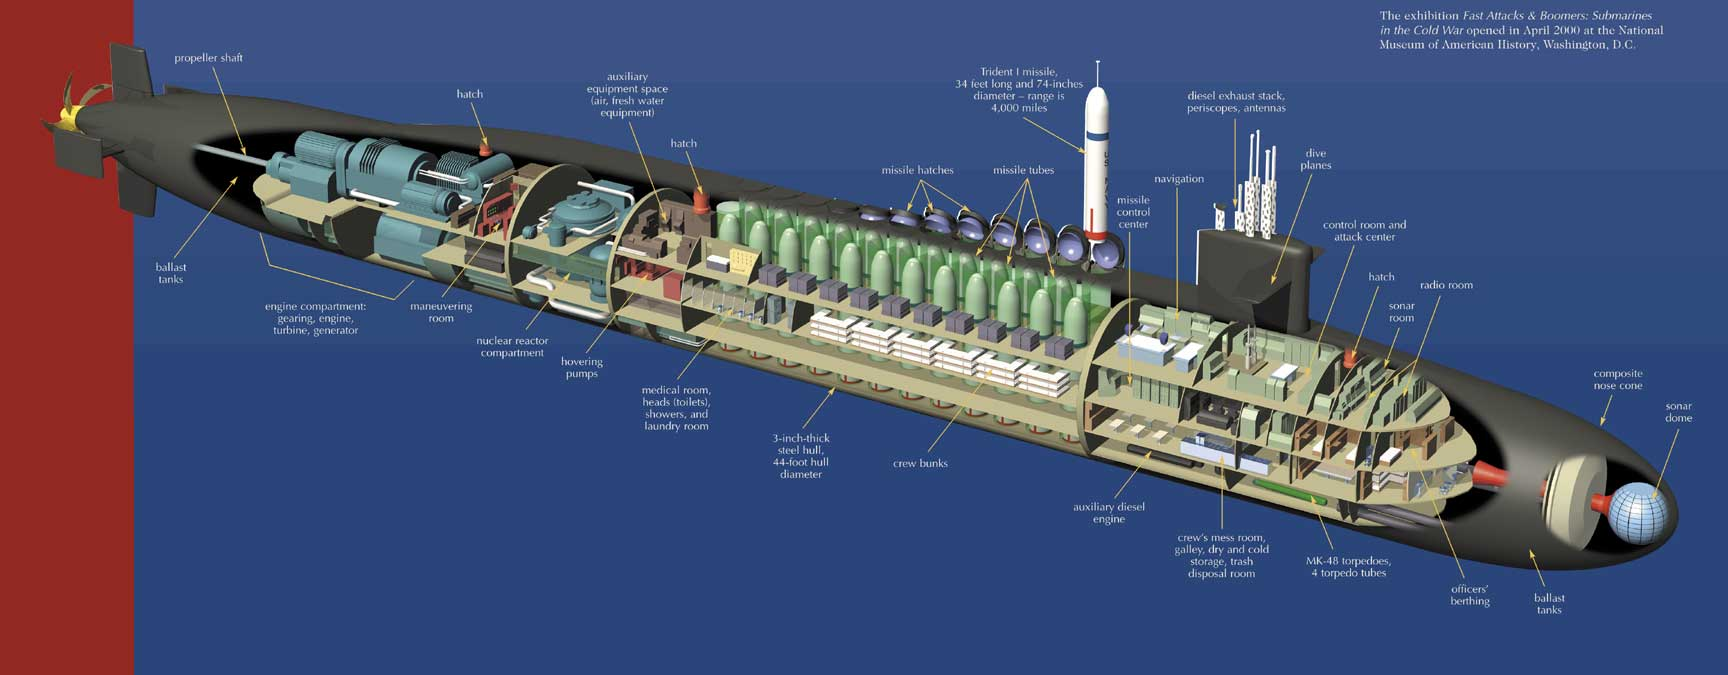 A ballistic missile submarine cutaway from the Smithsonian